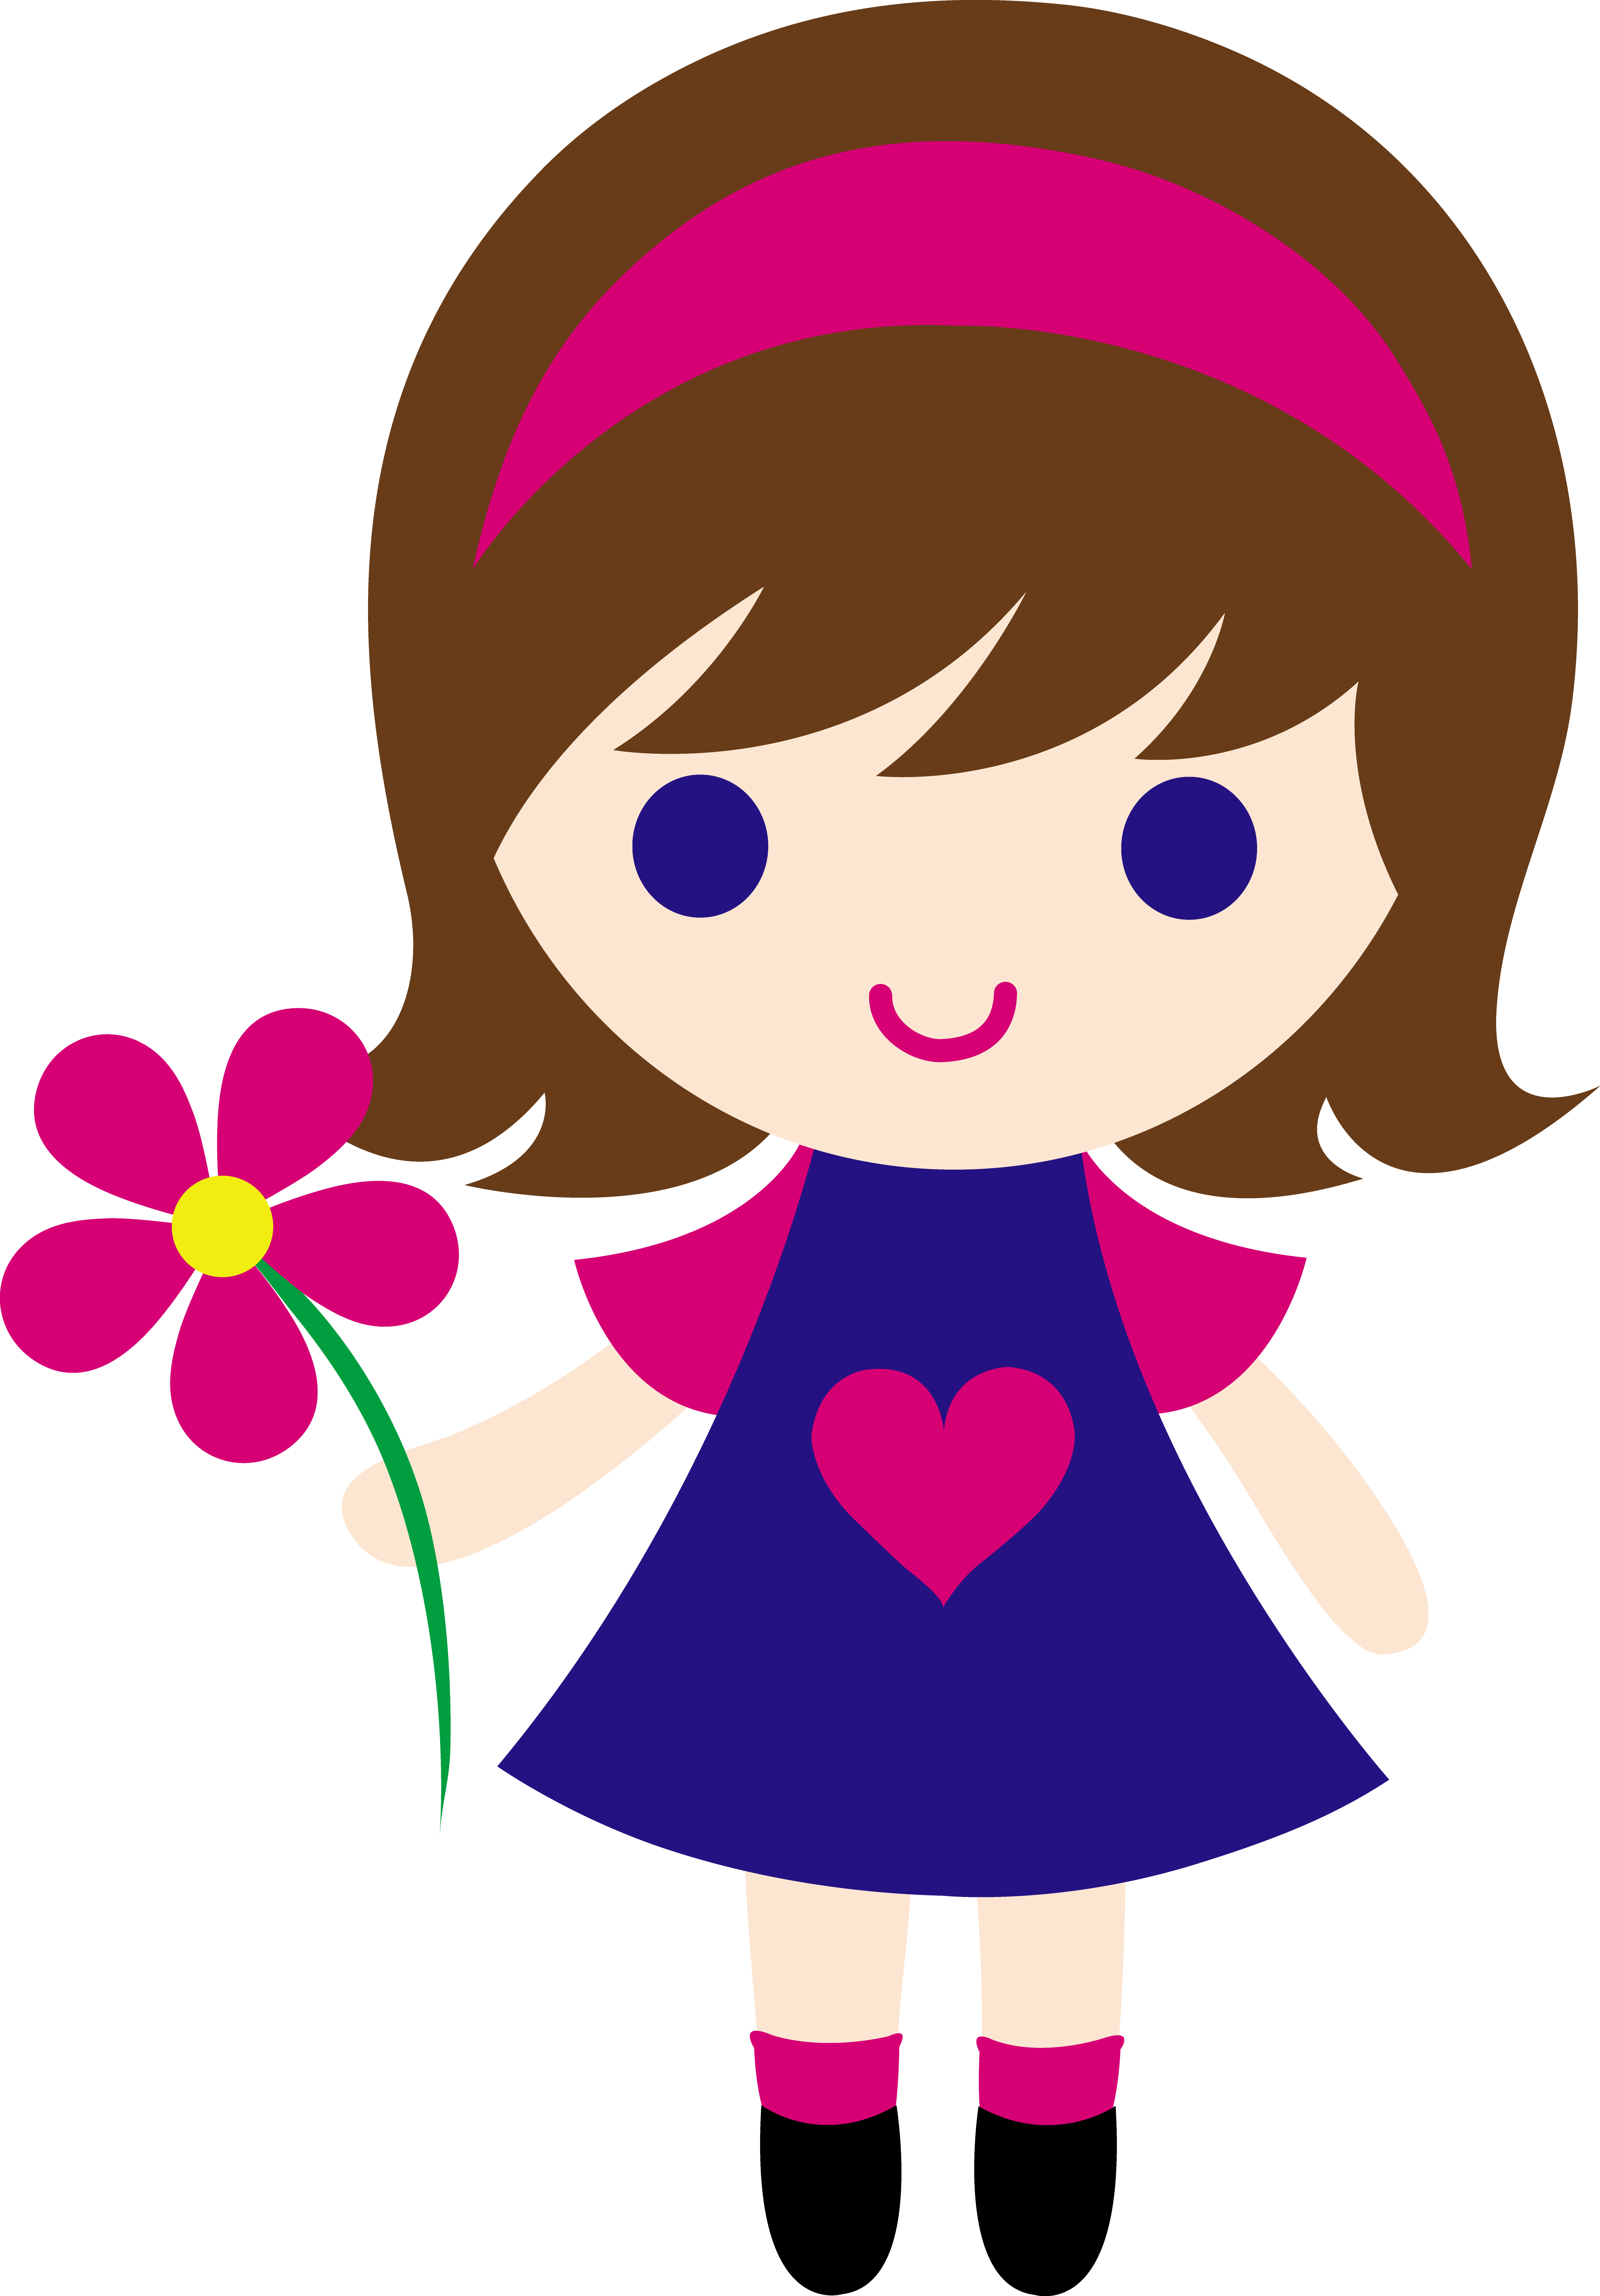 little girl cartoon drawing at getdrawings | free for personal